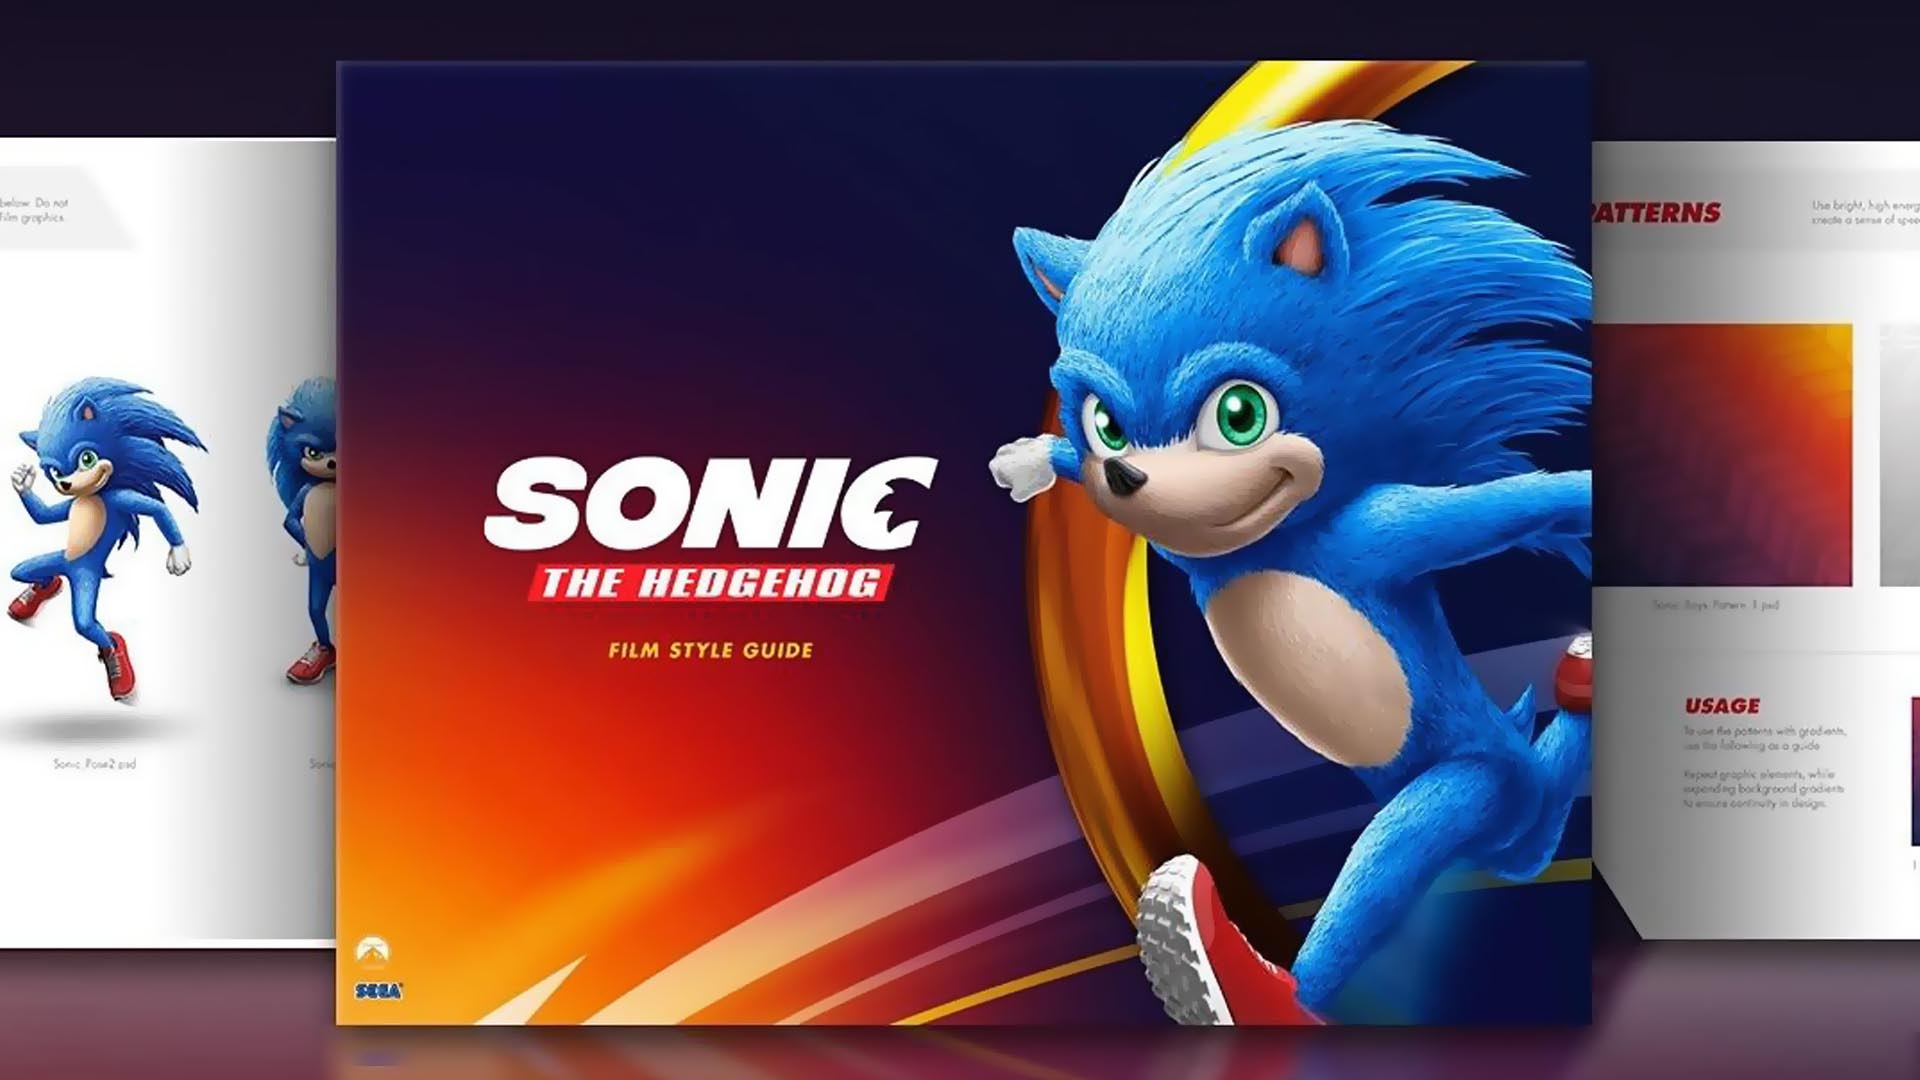 Live And Learn Sonic S New Form In Upcoming Film Through Sonic